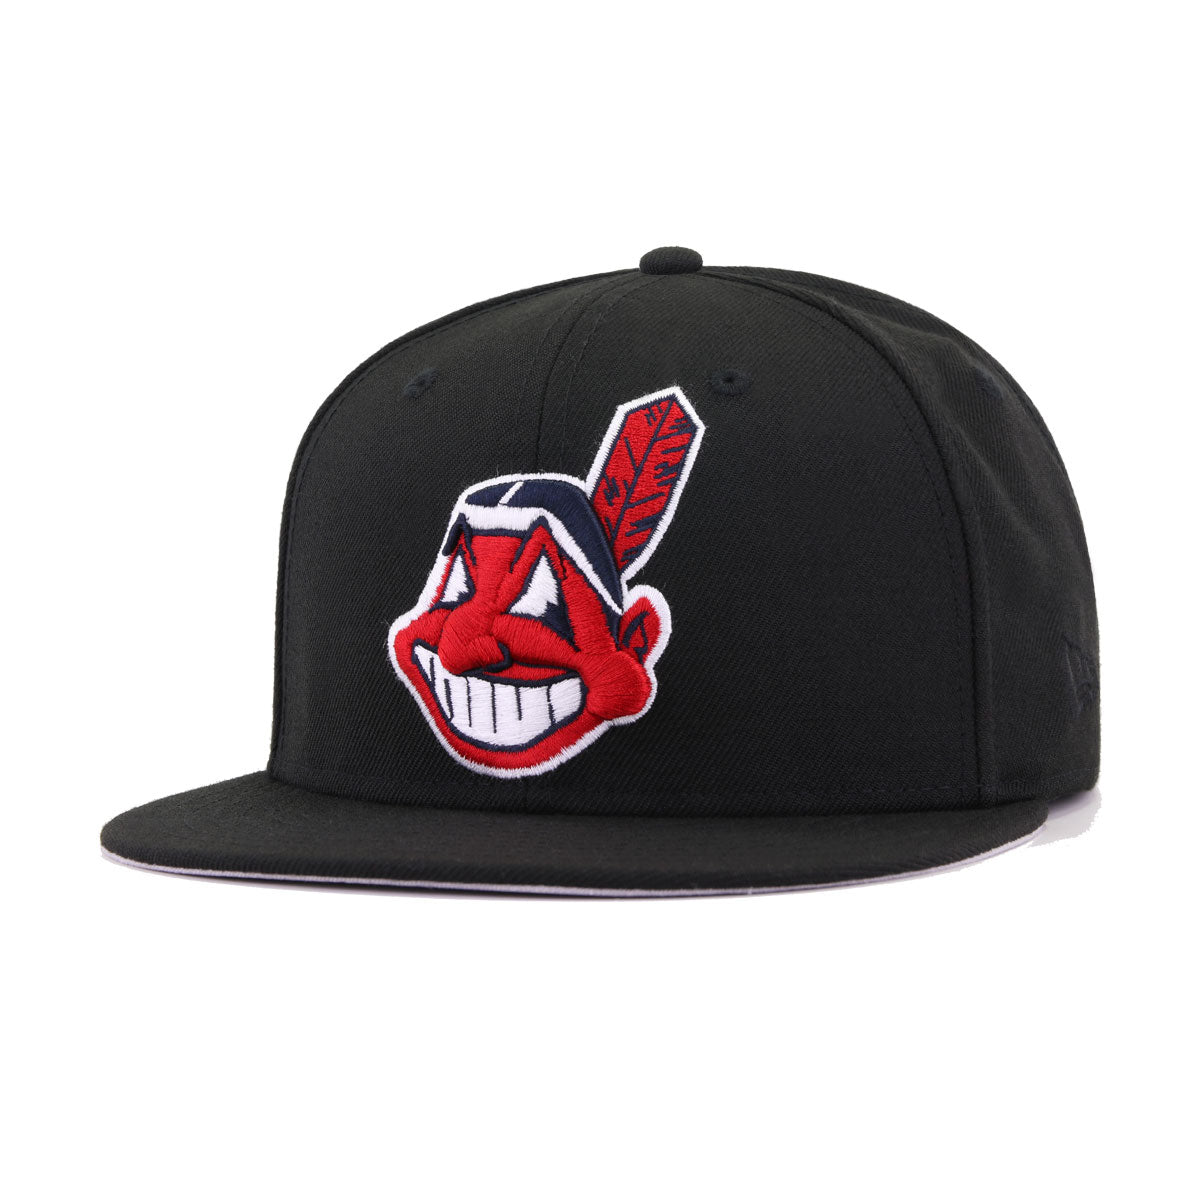 Cleveland Indians Black Chief Wahoo New Era 59Fifty Fitted